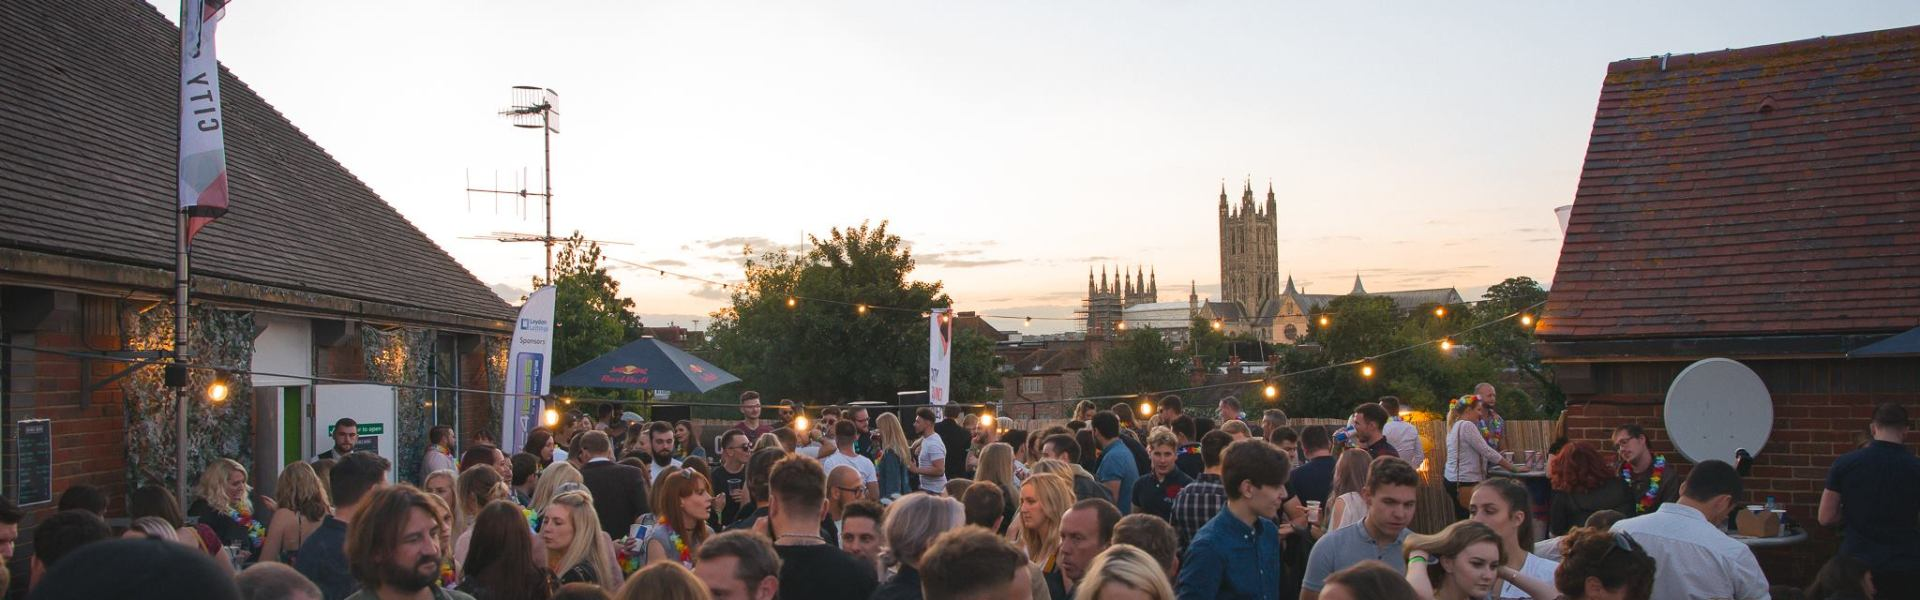 Canterbury Secret Rooftop Party on Sat 27th Jul 2019 at | Fatsoma